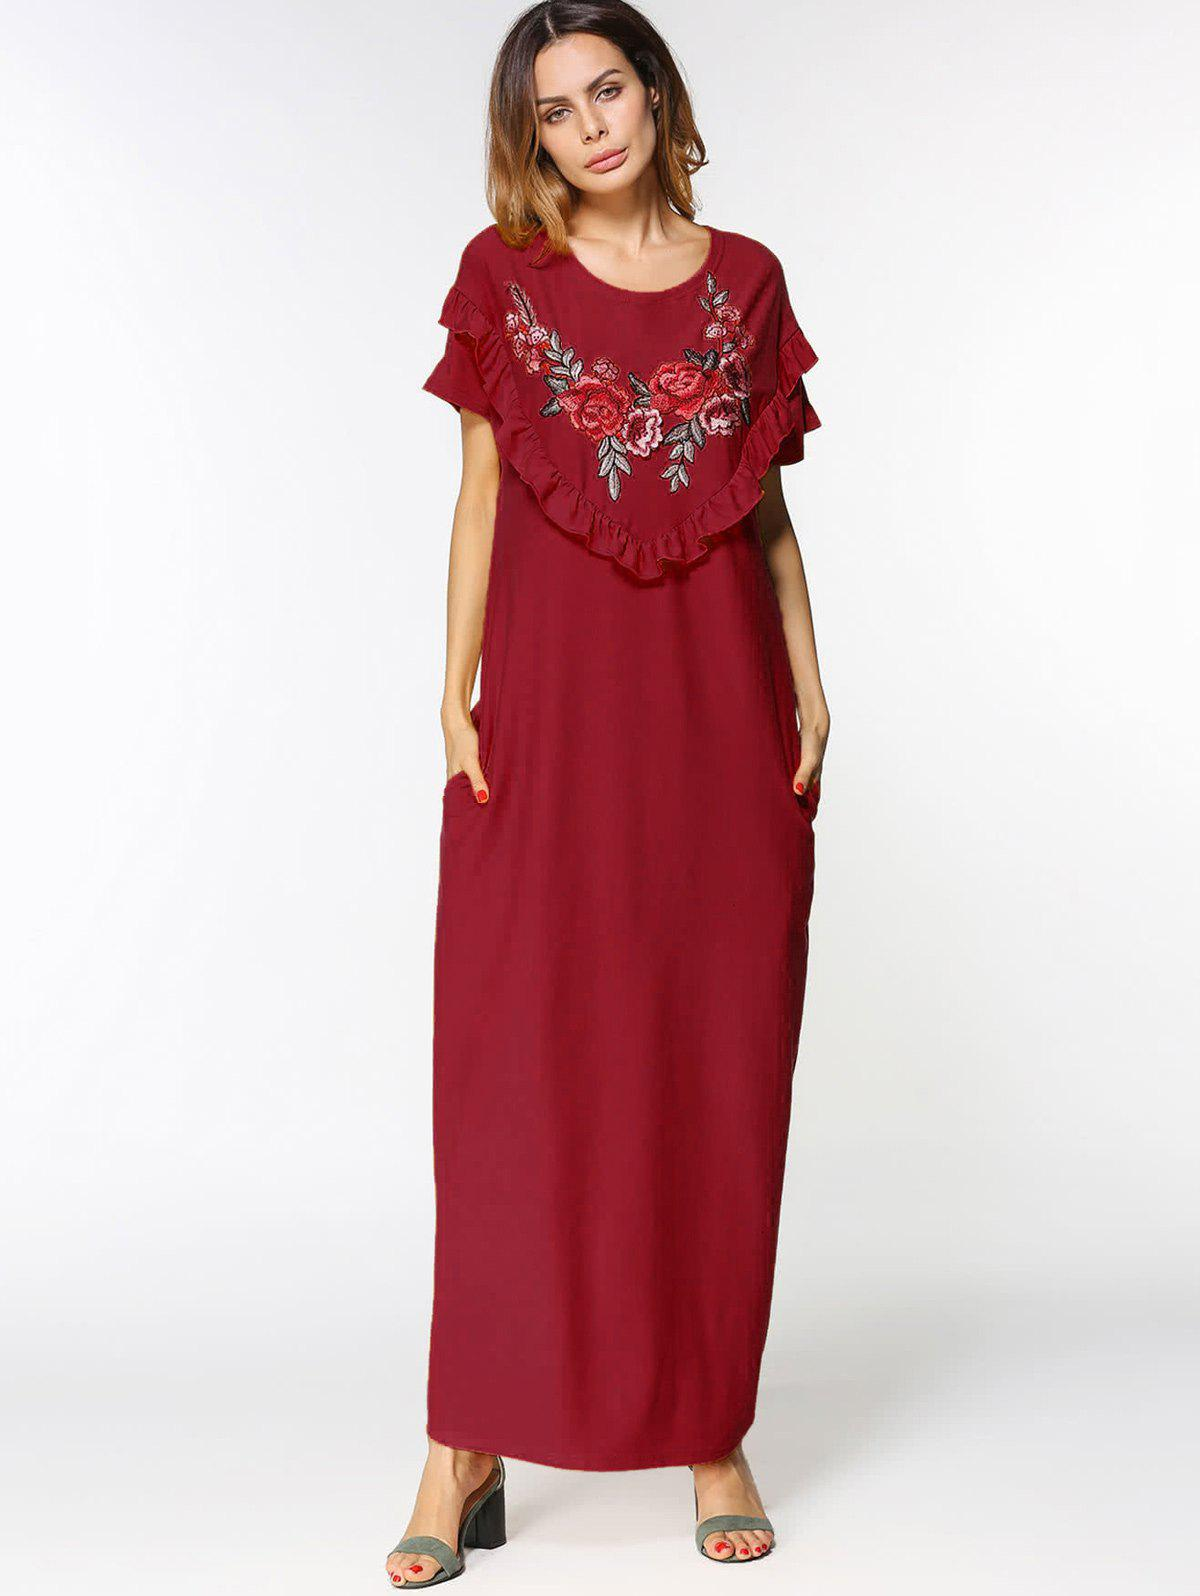 Unique Floral Embroidered Ruffles Maxi Dress